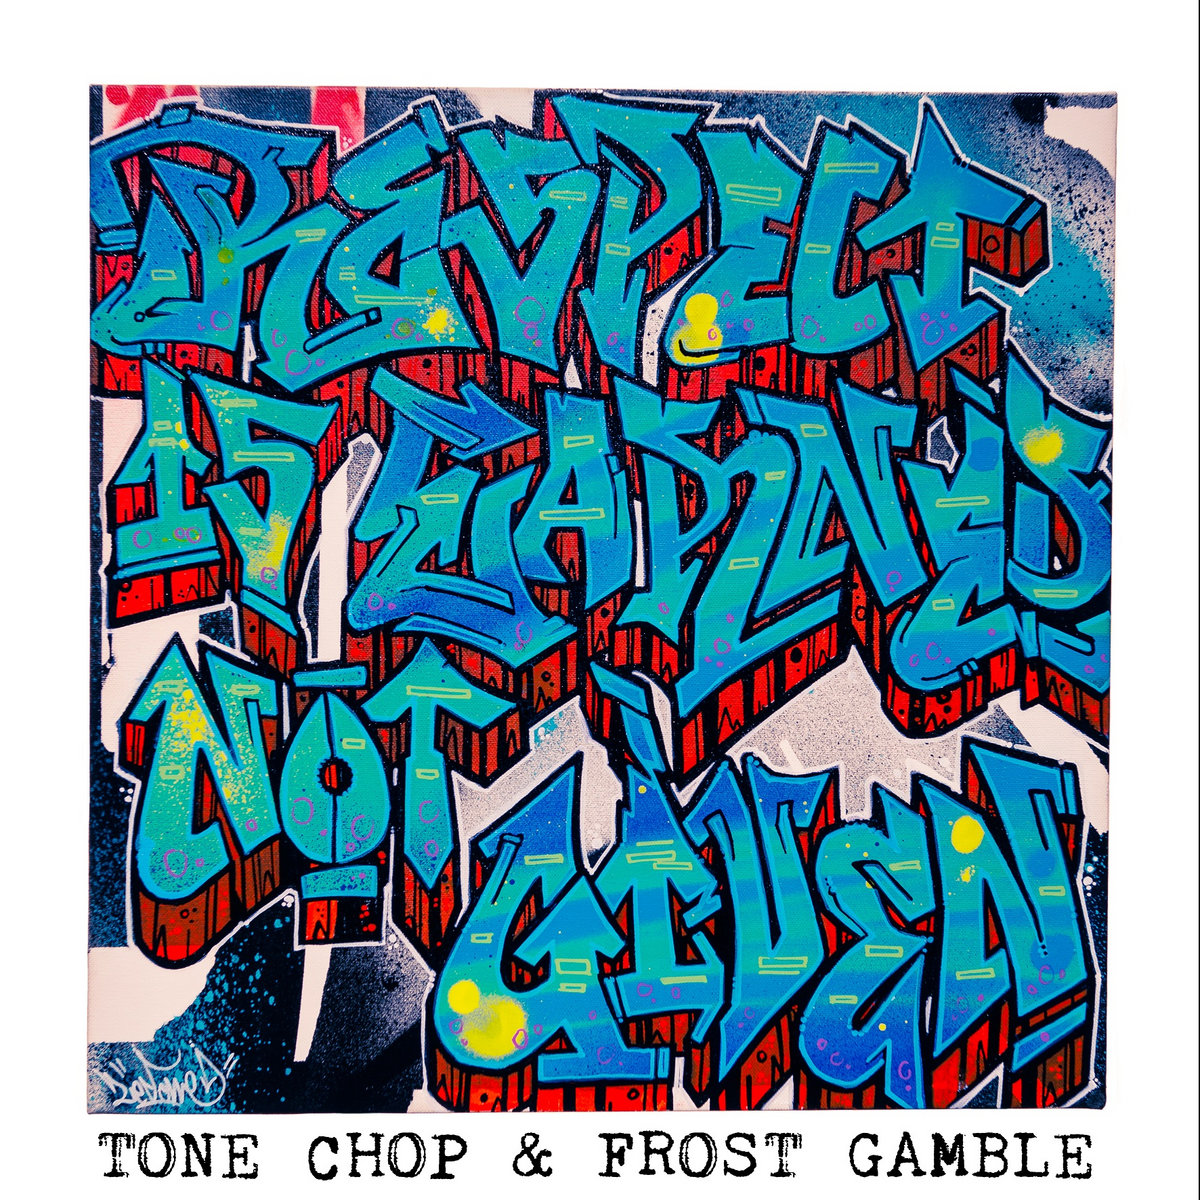 Tone Chop & Frost Gamble - Respect Is Earned Not Given